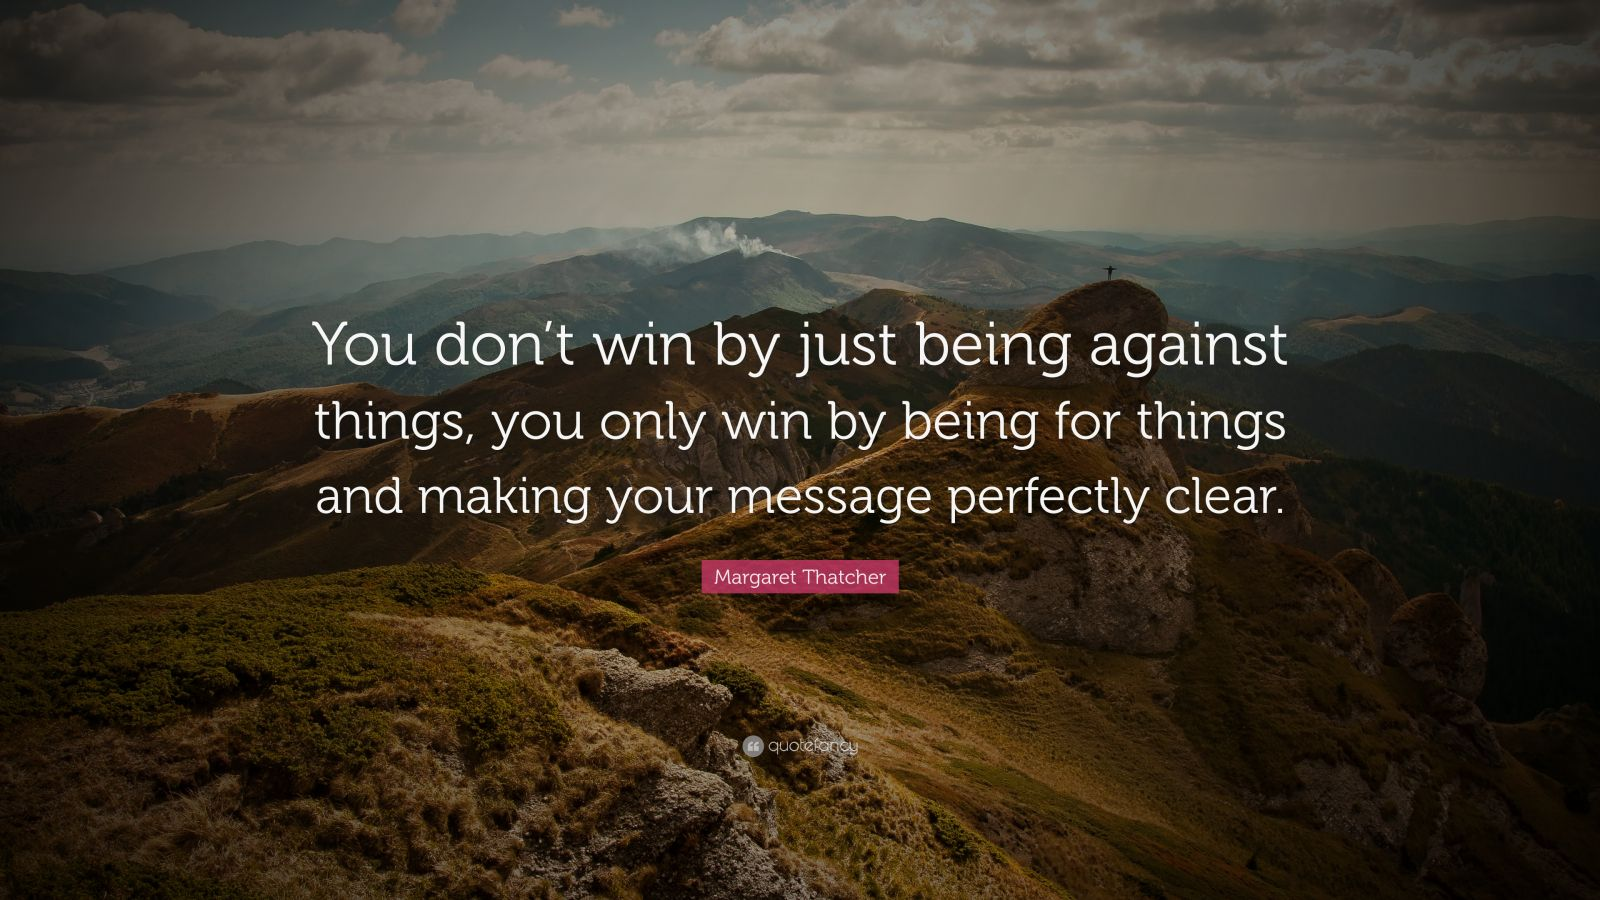 """Margaret Thatcher Quote: """"You don't win by just being against things, you only win by being for things and making your message perfectly clear."""""""